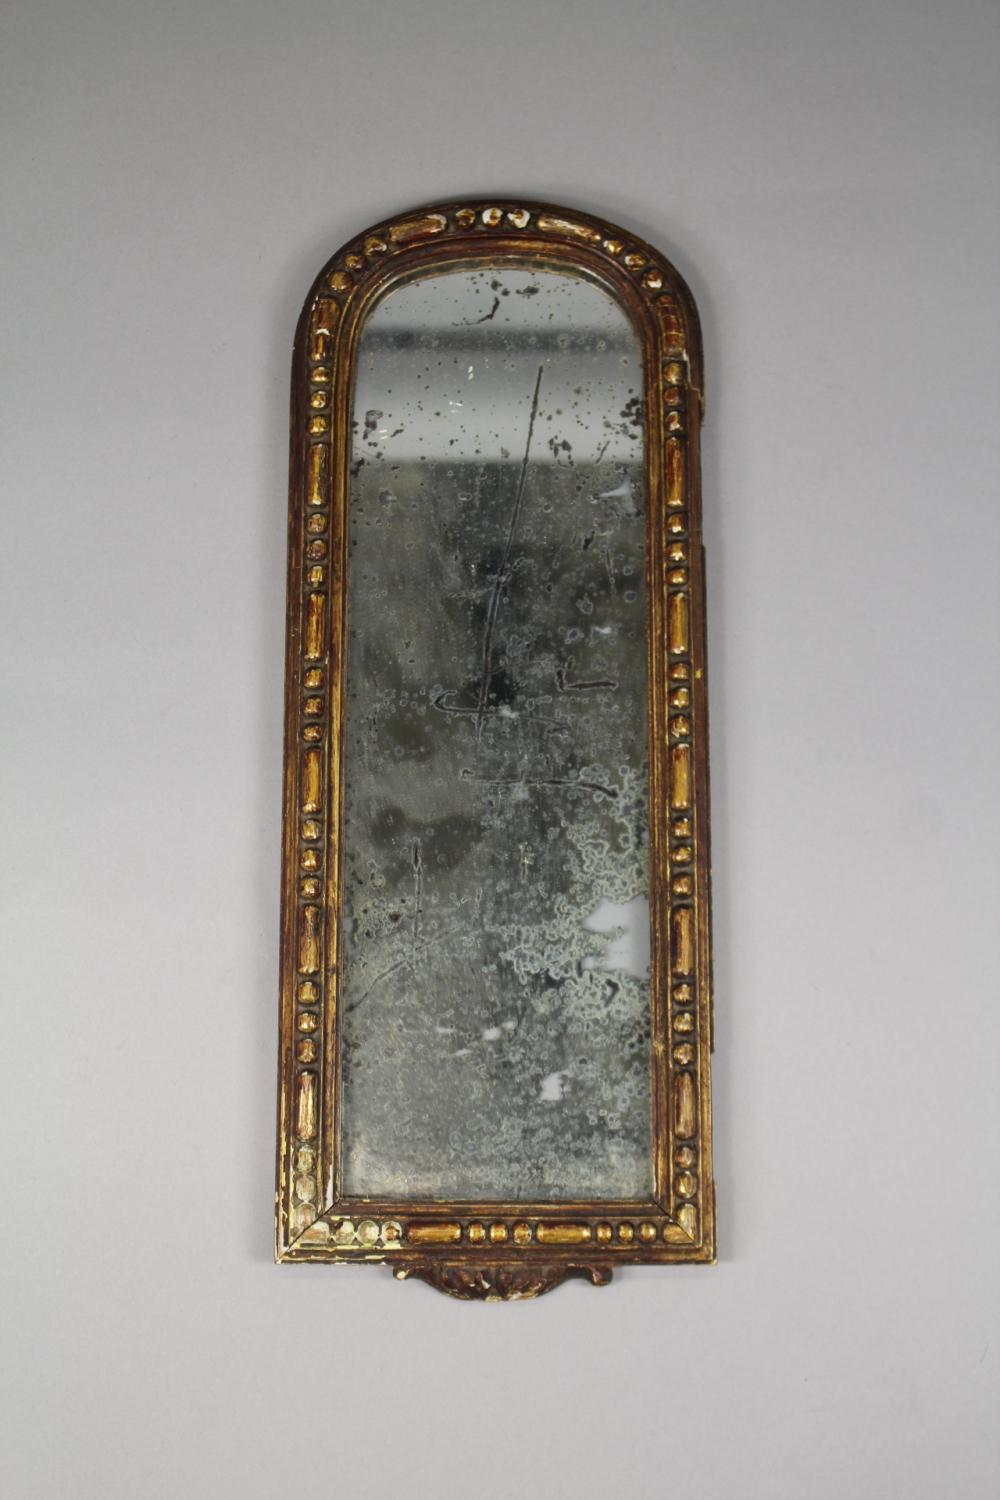 Antique gilt wood arched top small scale mirror, approx 36cm H x 14cm W